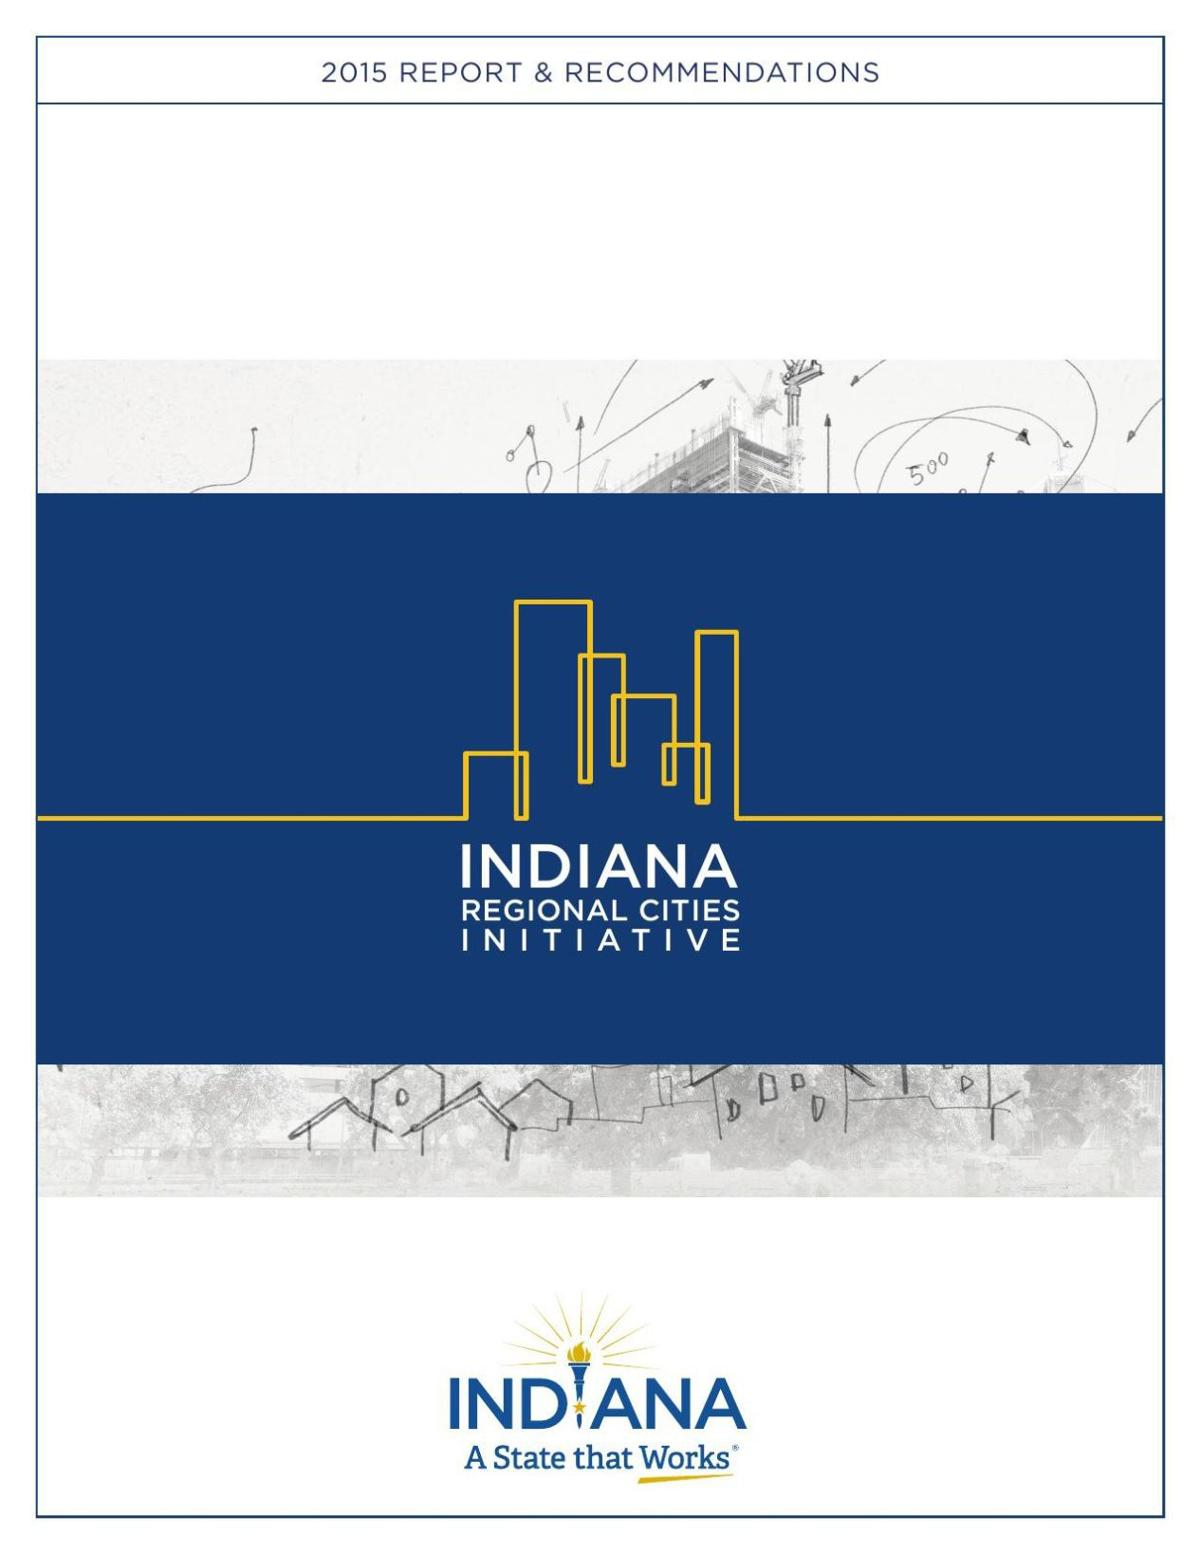 Recommendations and report of Regional Cities Strategic Review Committee